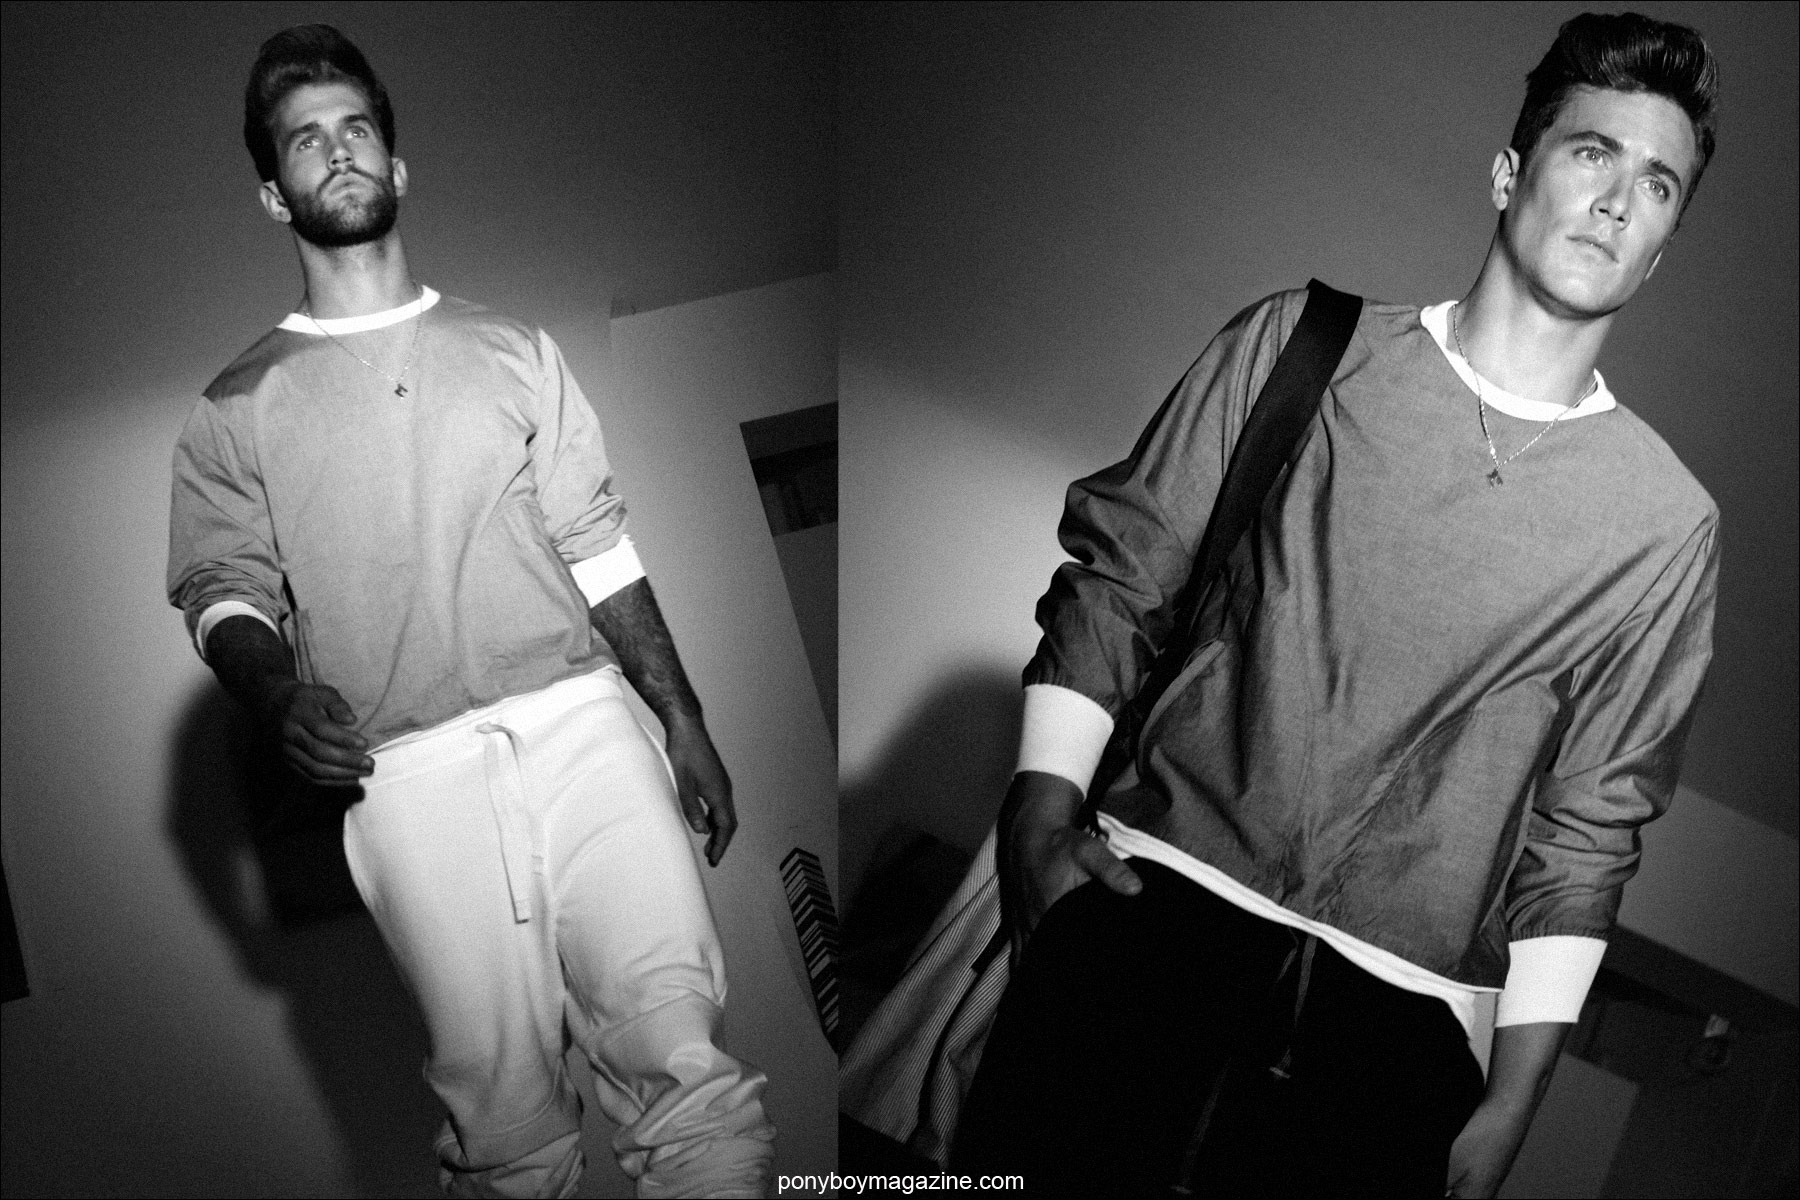 Male models in pullovers designed by Martin Keehn S/S15. Photo by Alexander Thompson for Ponyboy Magazine.